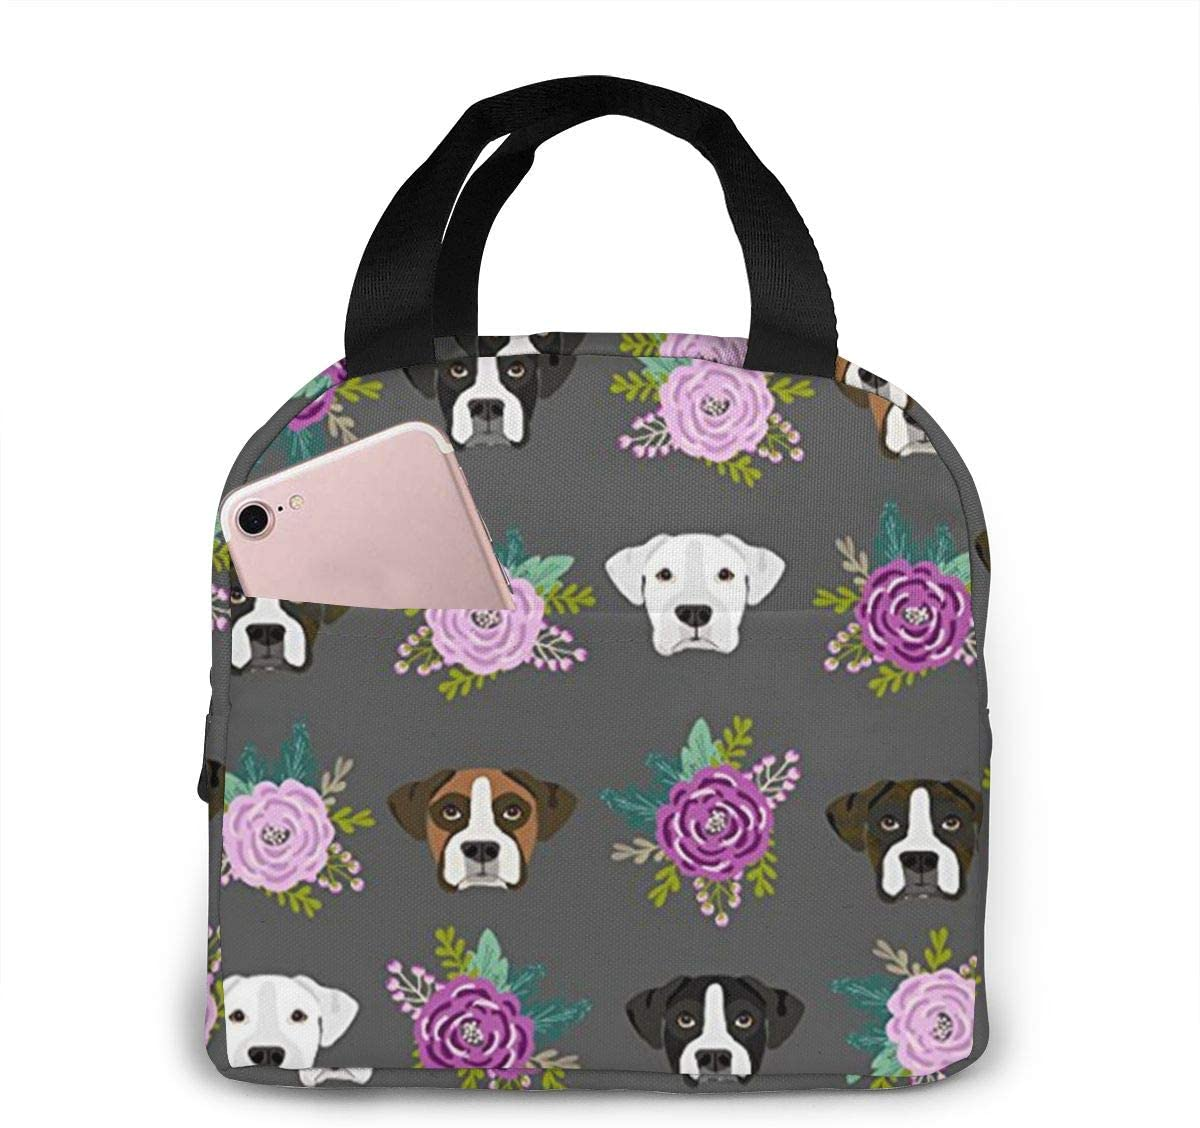 antspuent Boxer Dogs Floral Lunch Bag for Women Girls Kids Insulated Picnic Pouch Thermal Cooler Tote Bento Large Meal Prep Cute Bag Big Leakproof Soft Bags for Lunch Box, Camping, Travel, Fishing